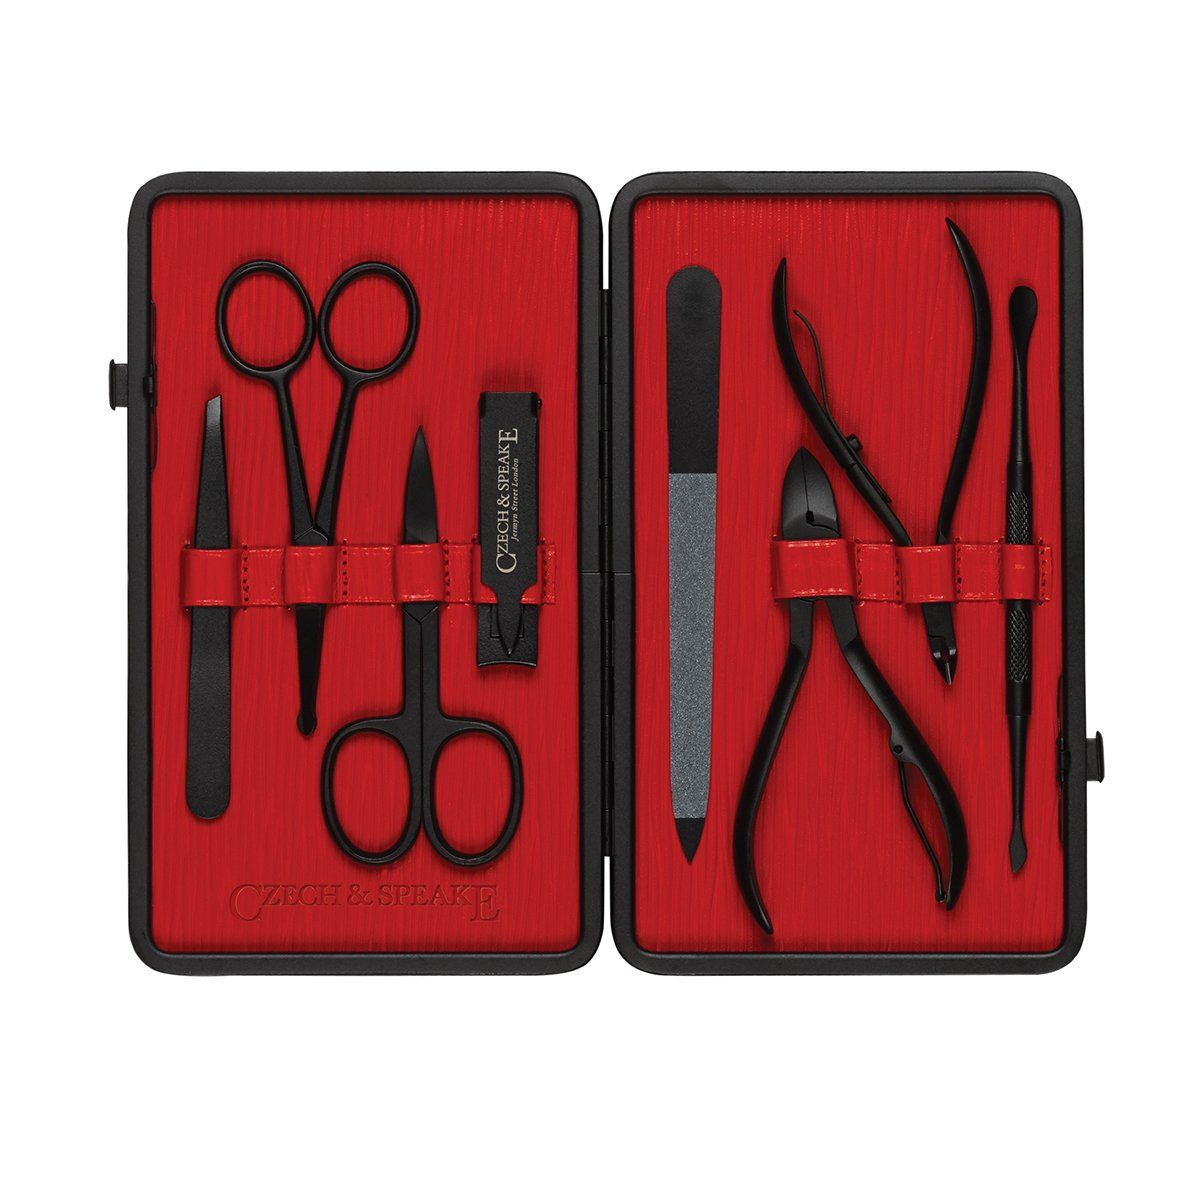 Manicure Set Black & Red Niche Luxury Men's Grooming